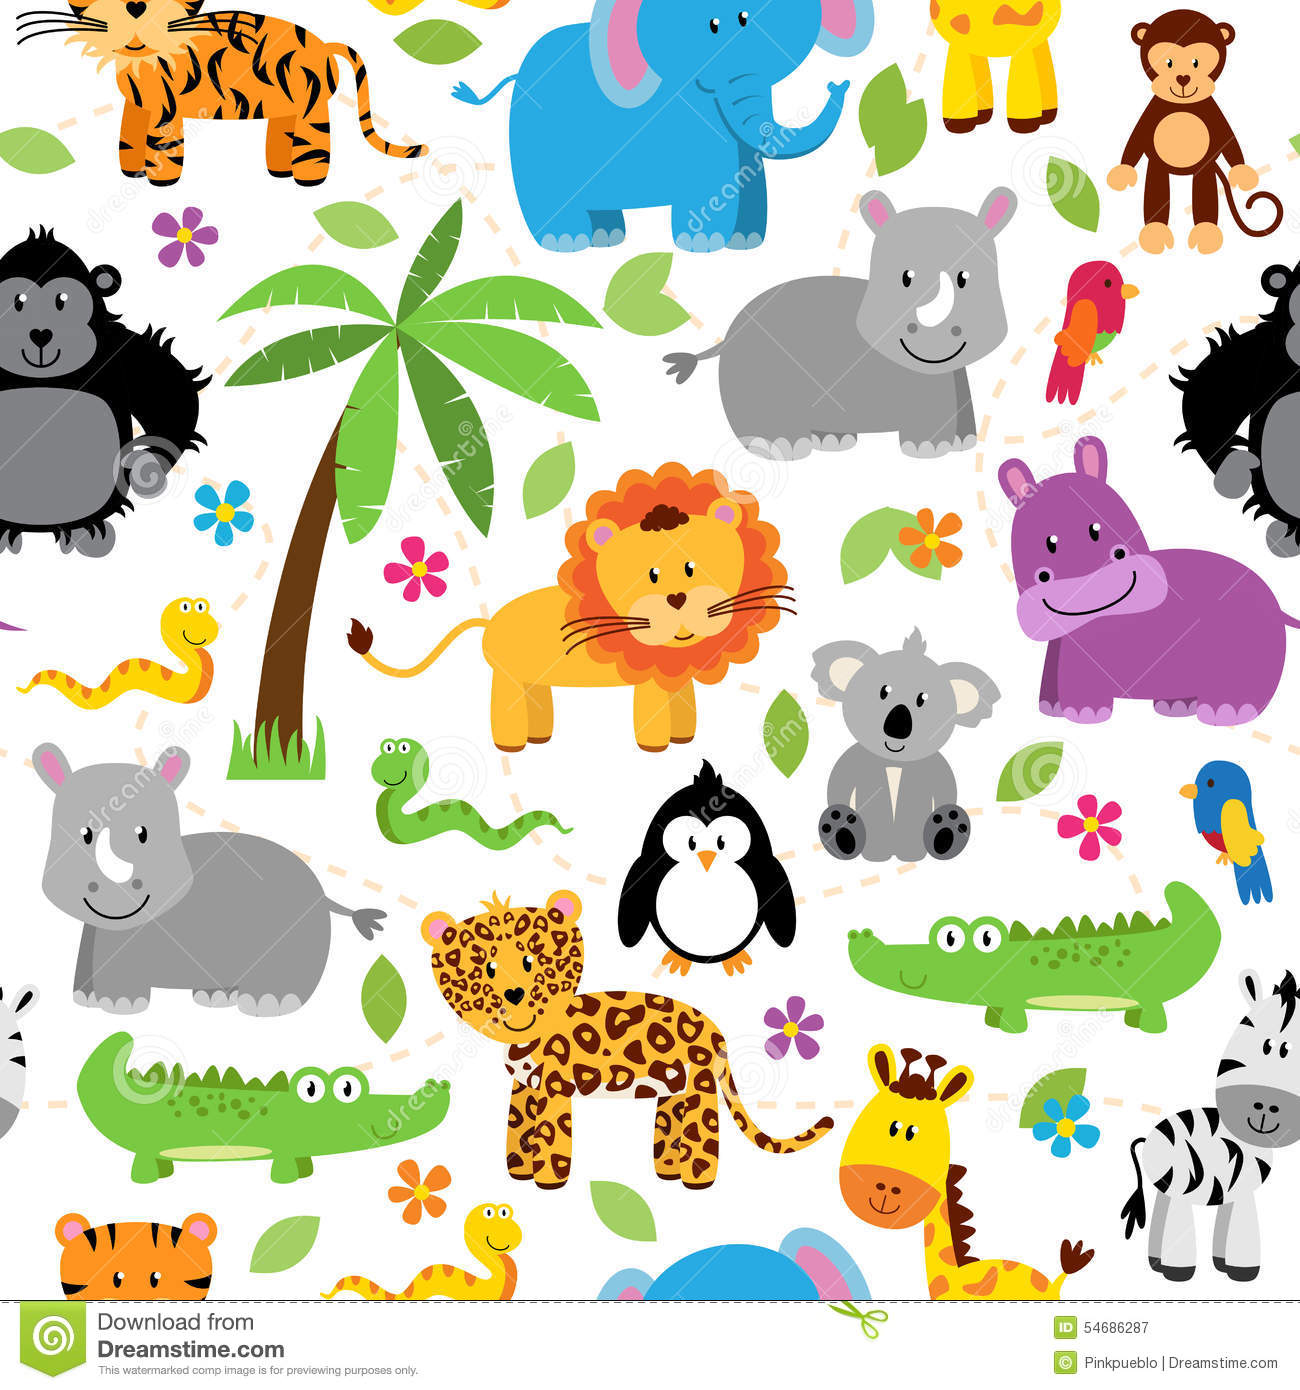 Seamless, Tileable Jungle Animal Themed Background Patterns Stock